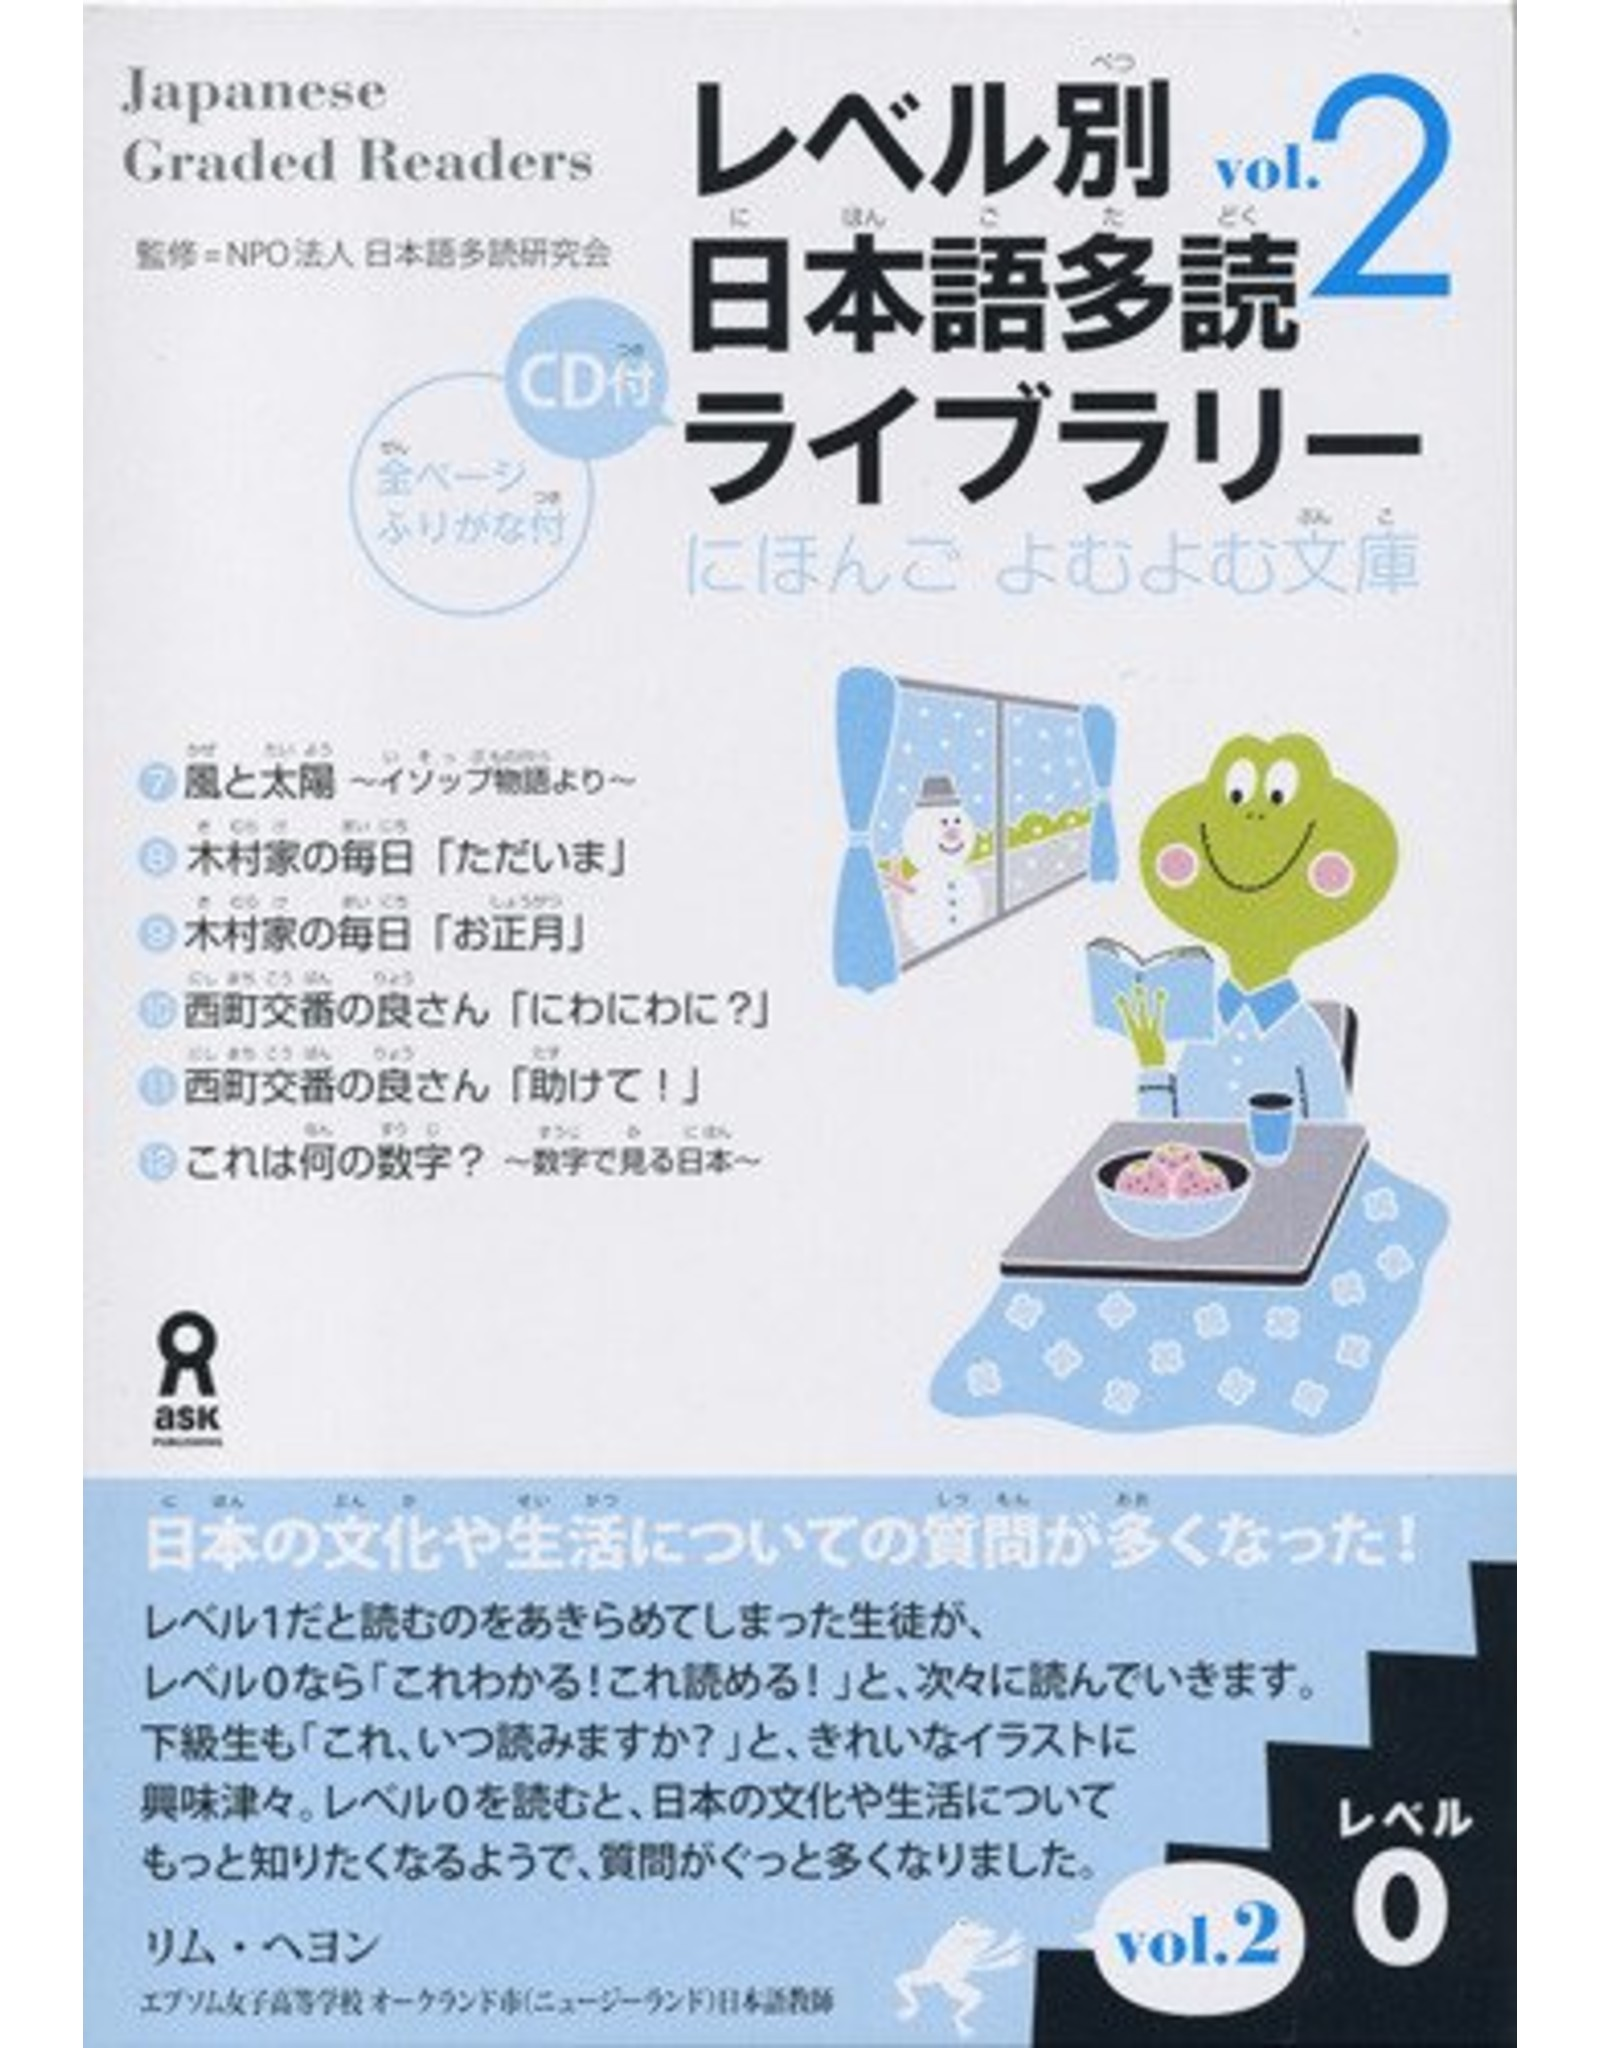 ASK LEVEL BETSU NIHONGO TADOKU LIBRARY (2) LEVEL 0 - JAPANESE GRADED READERS WCD VOL. 2 LEVEL 0